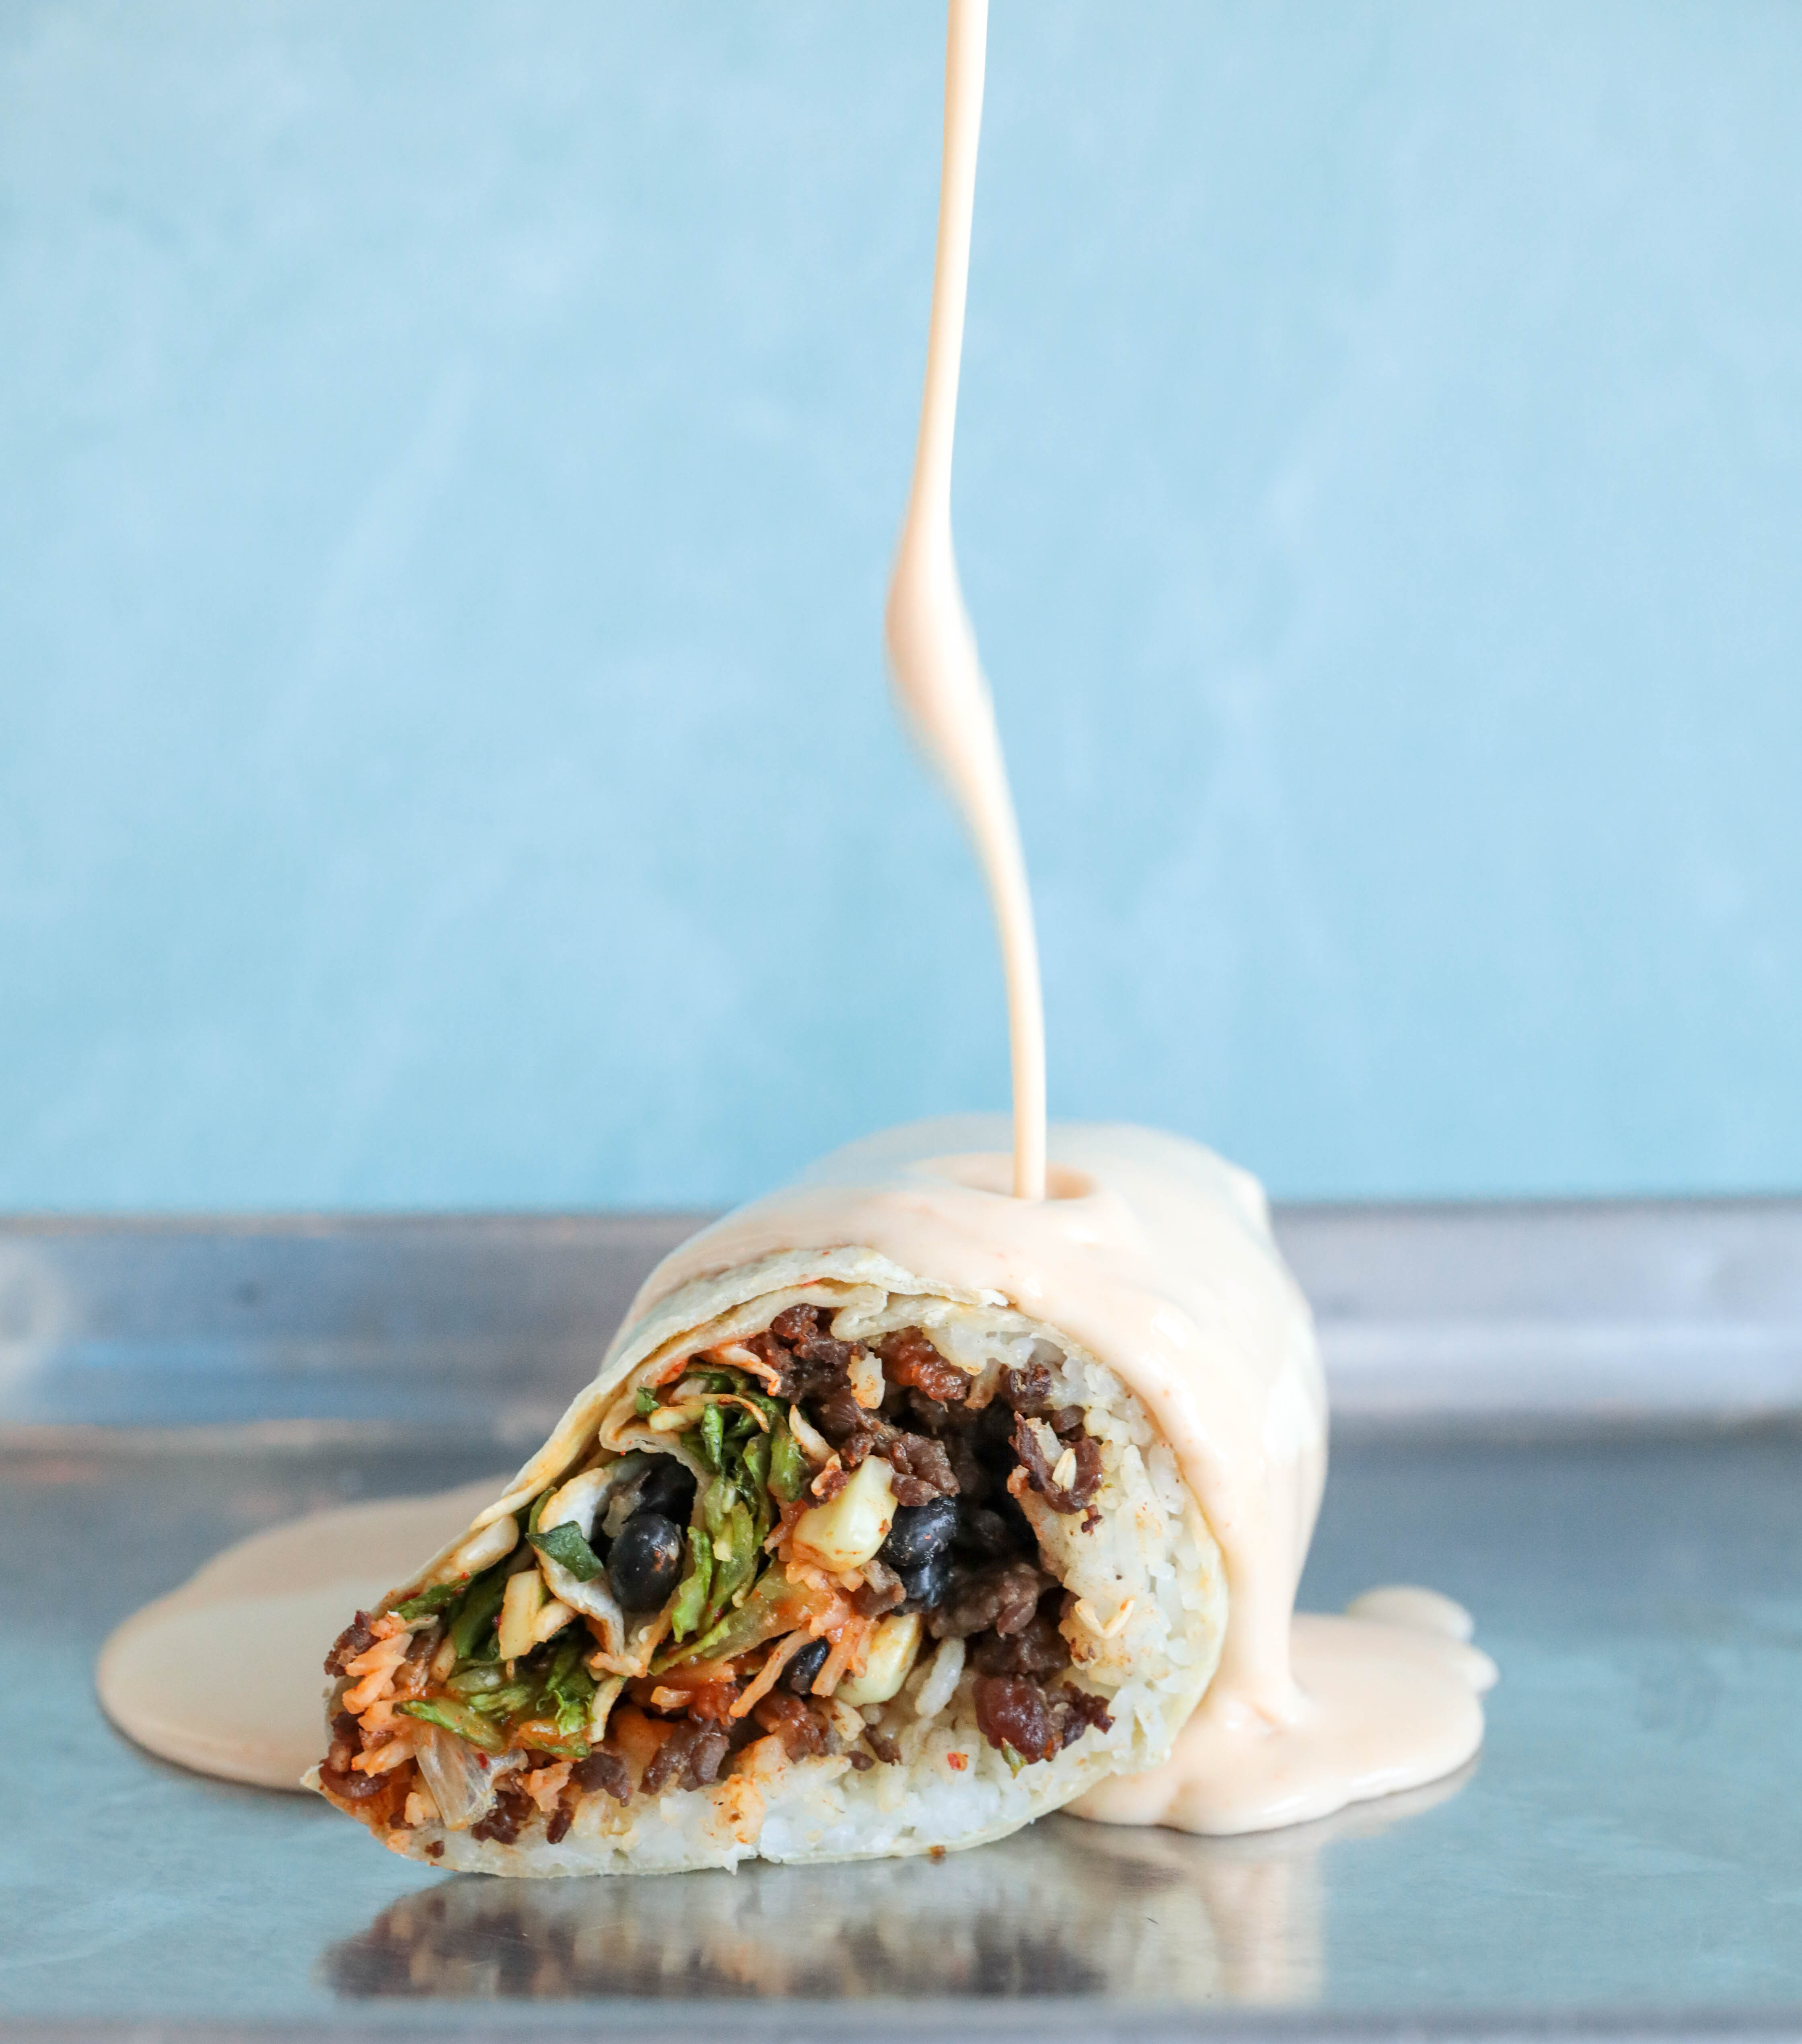 Yellow queso pours down on top of a burrito from Yumbii stuffed with rib-eye, shredded carrots, lettuce, rice and black beans